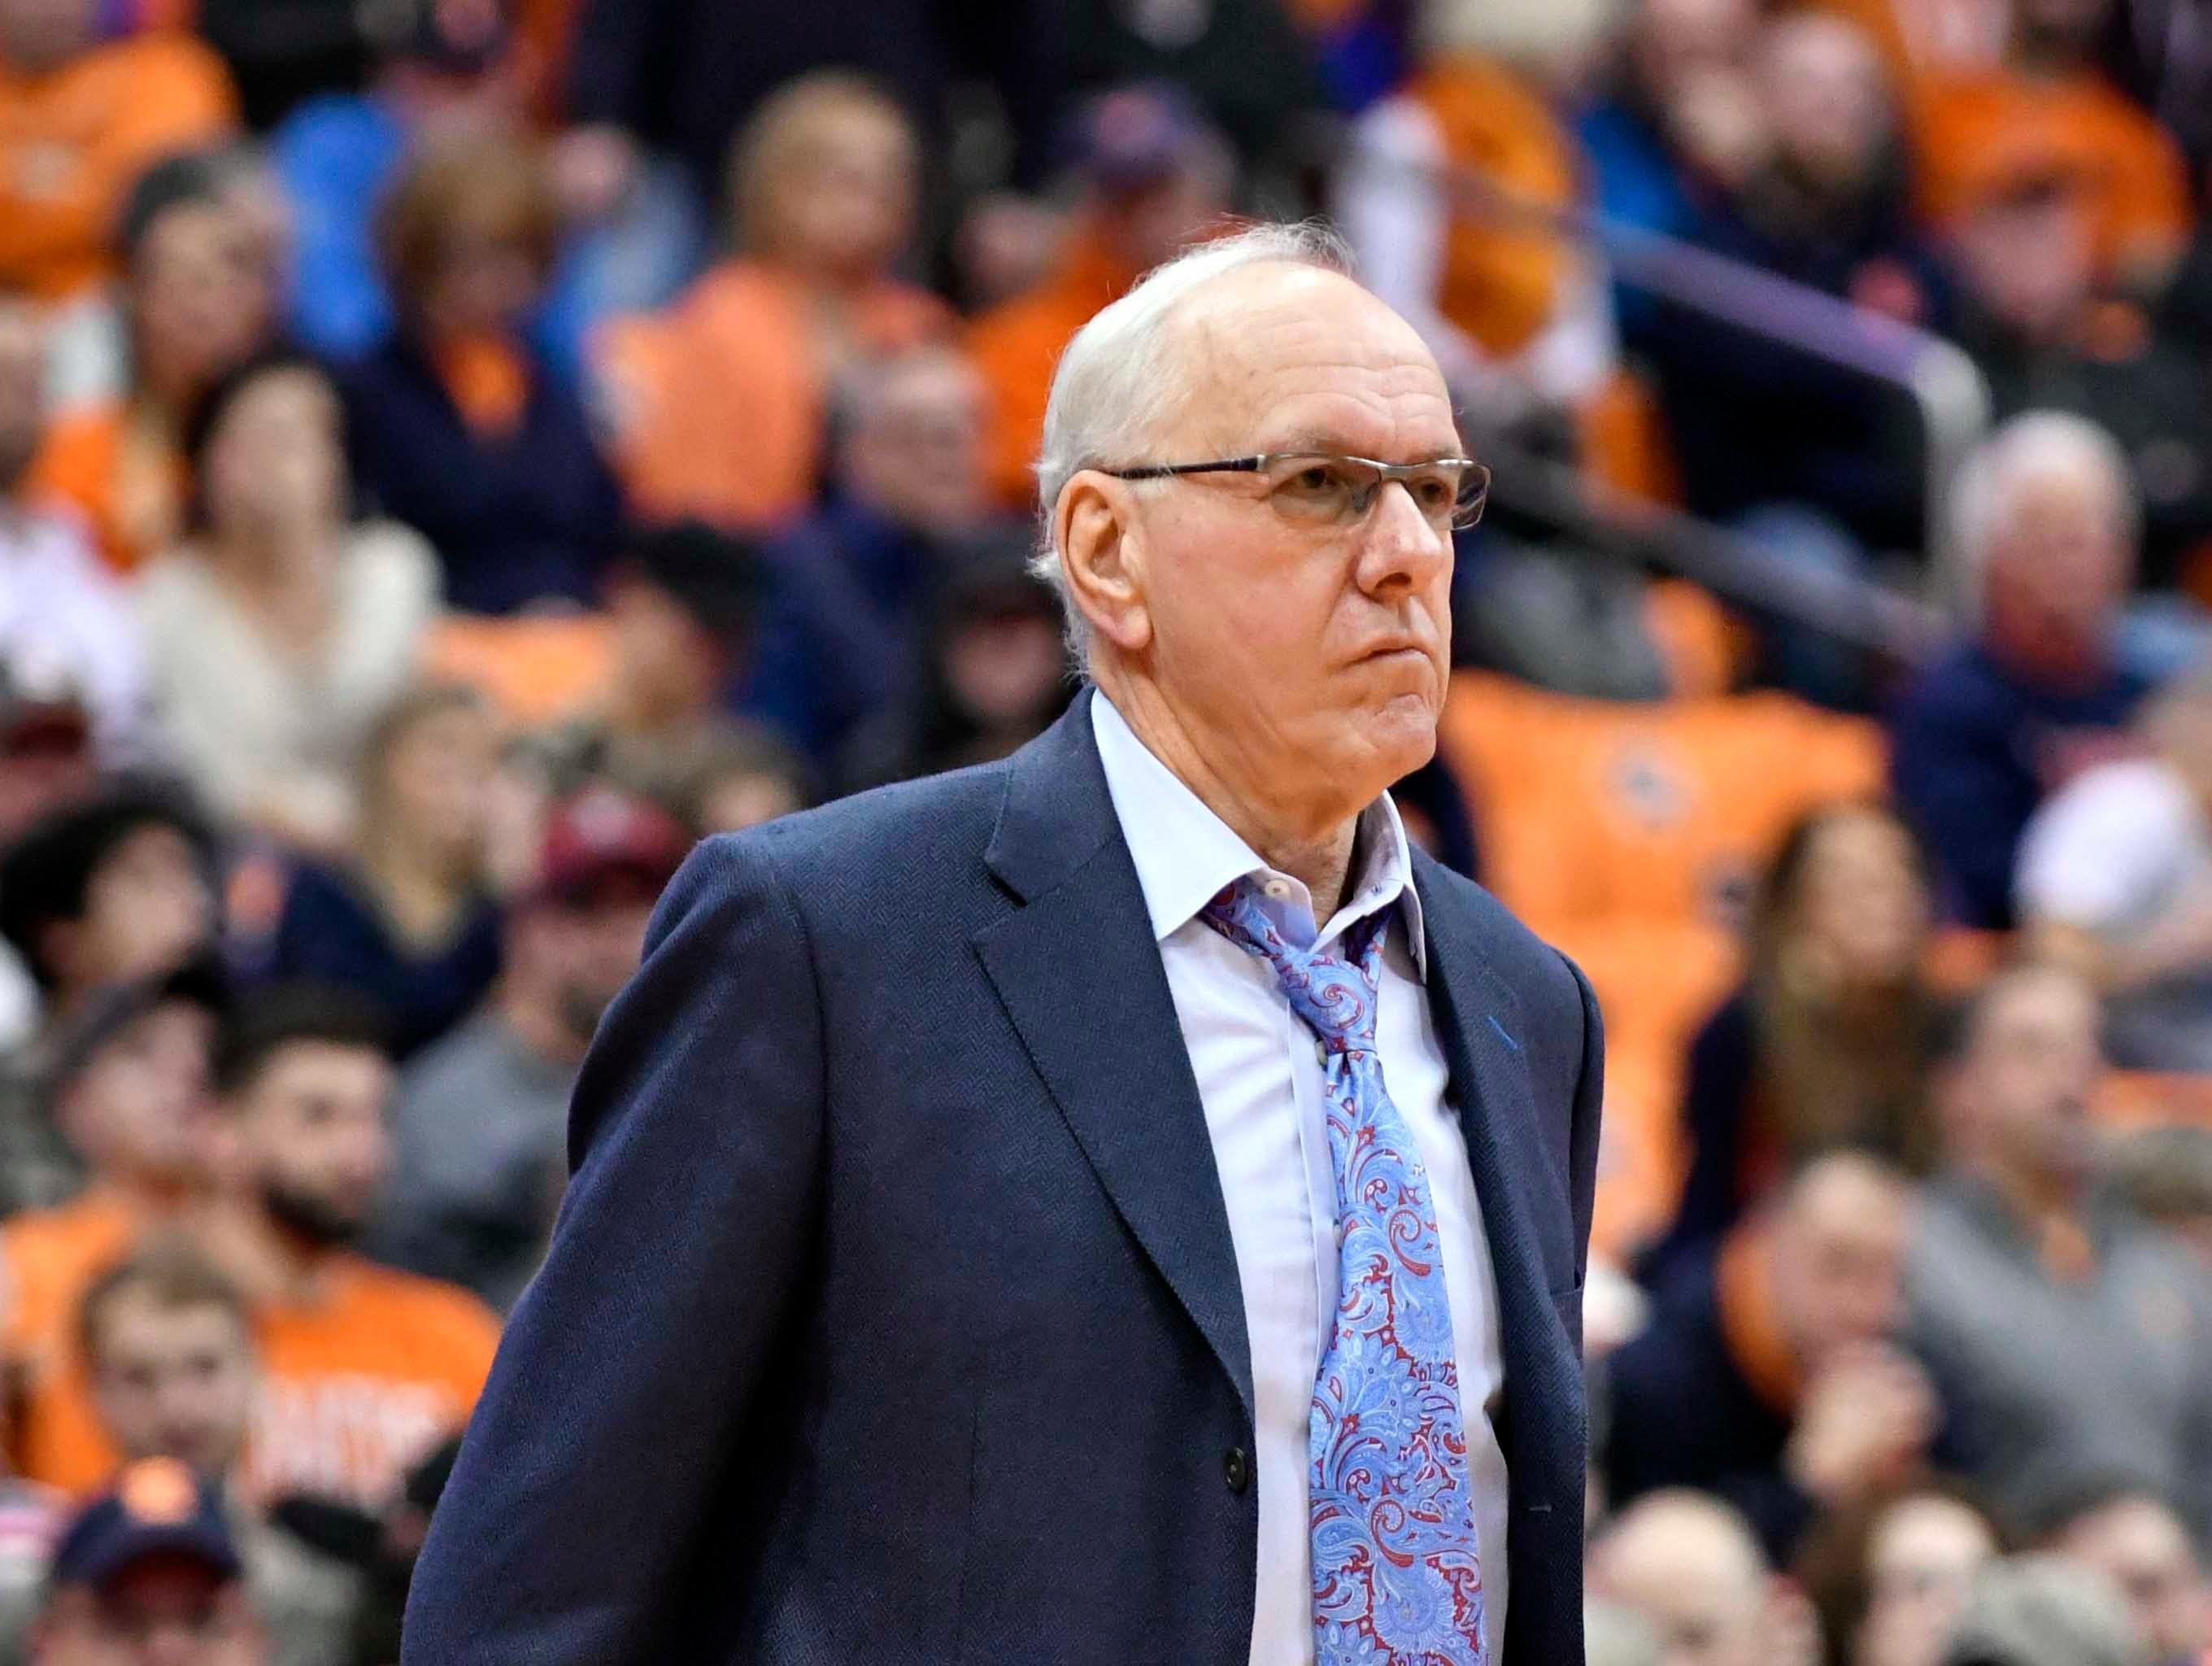 Dec 1, 2018; Syracuse, NY, USA; Syracuse Orange head coach Jim Boeheim watches the play on the court during the second half against the Cornell Big Red at the Carrier Dome. Mandatory Credit: Mark Konezny-USA TODAY Sports